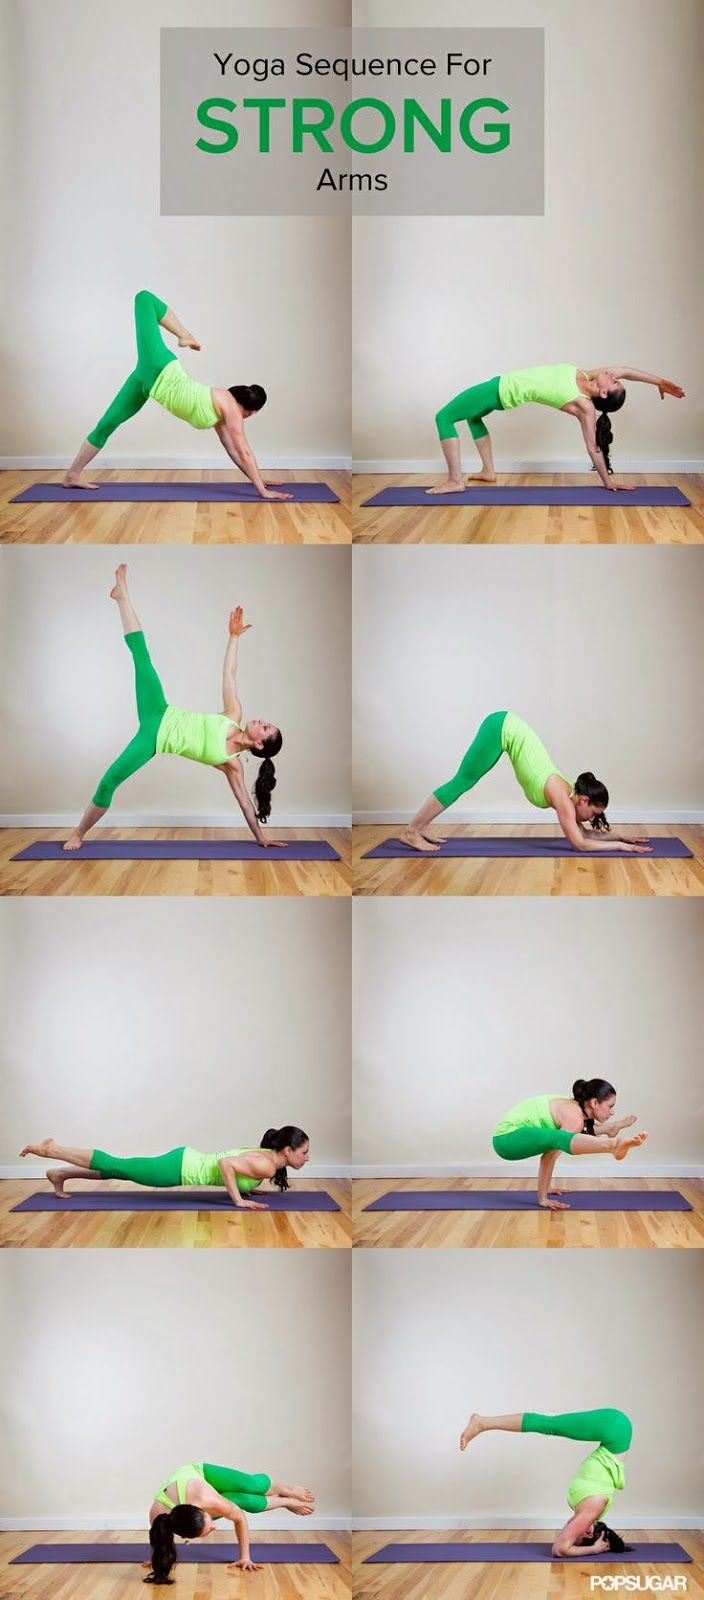 Diary of a Fit Mommy: All About Yoga